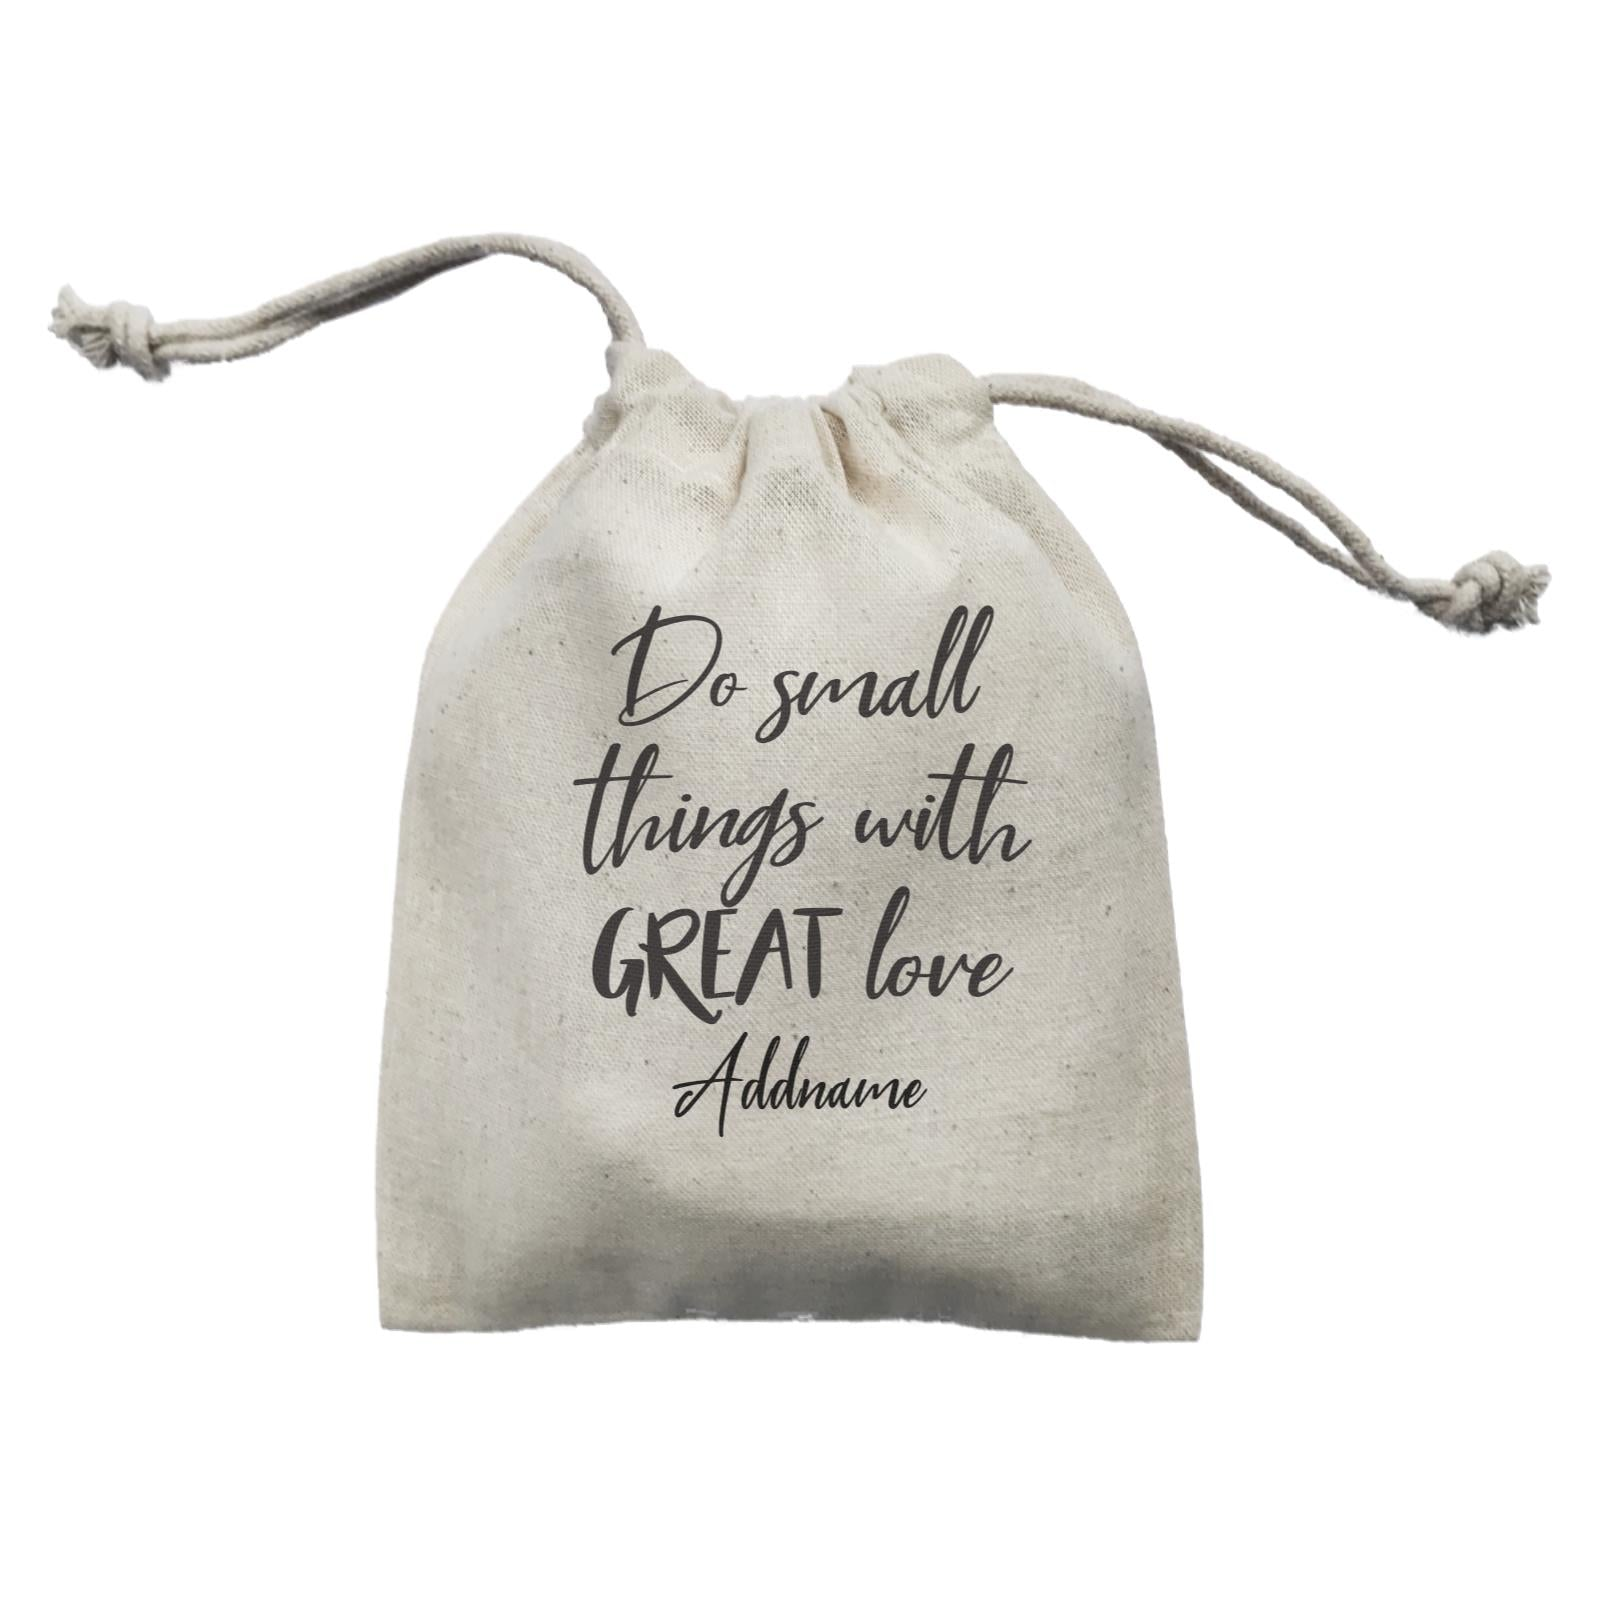 Inspiration Quotes Do Small Things With Great Love Addname Mini Accessories Mini Pouch